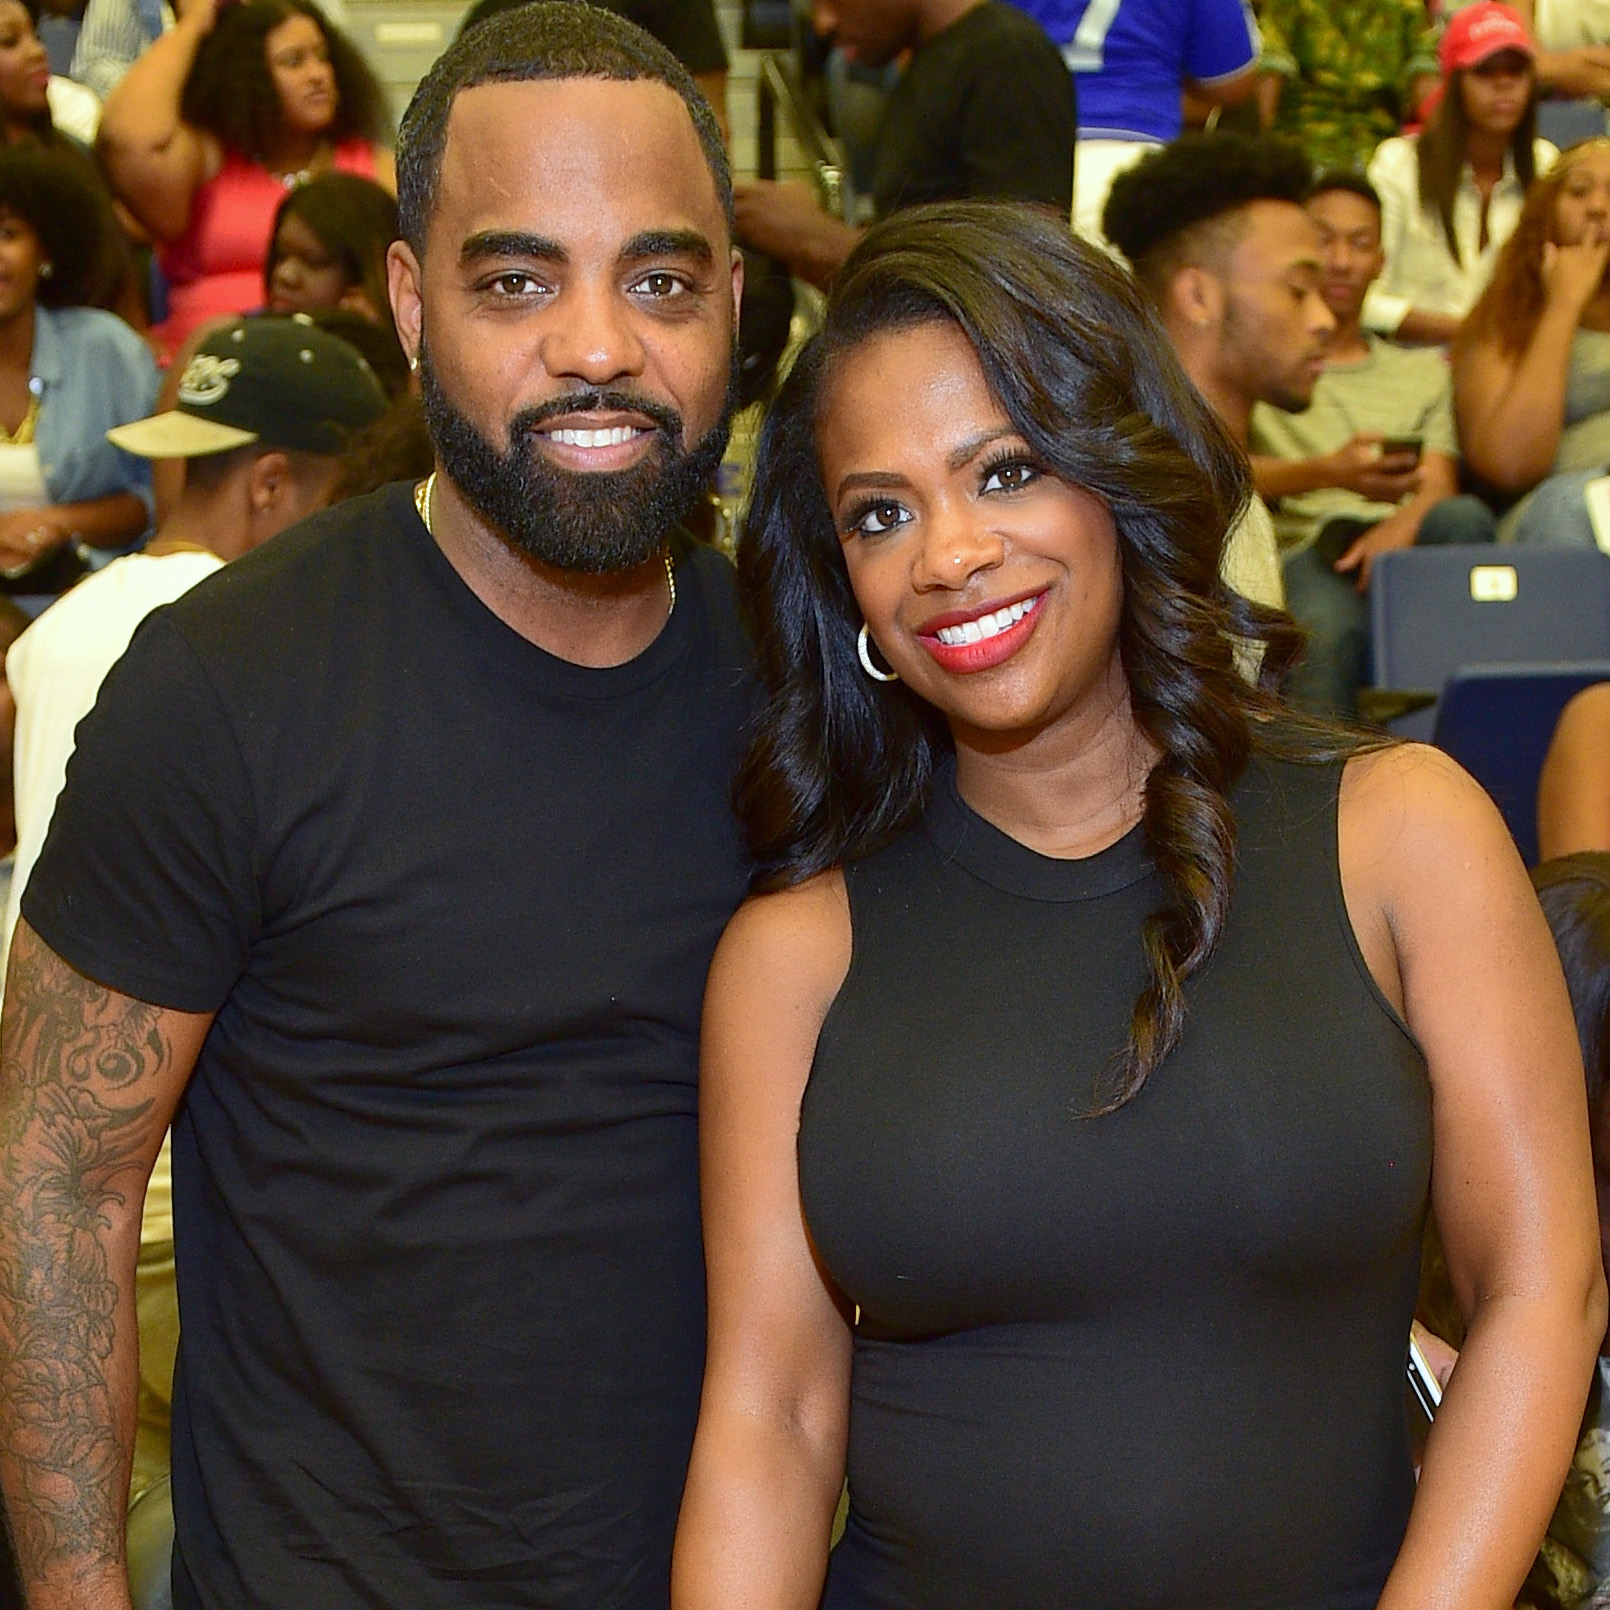 Kandi Burruss And Todd Tucker Are Living Their Dream In This Amazing Vacay